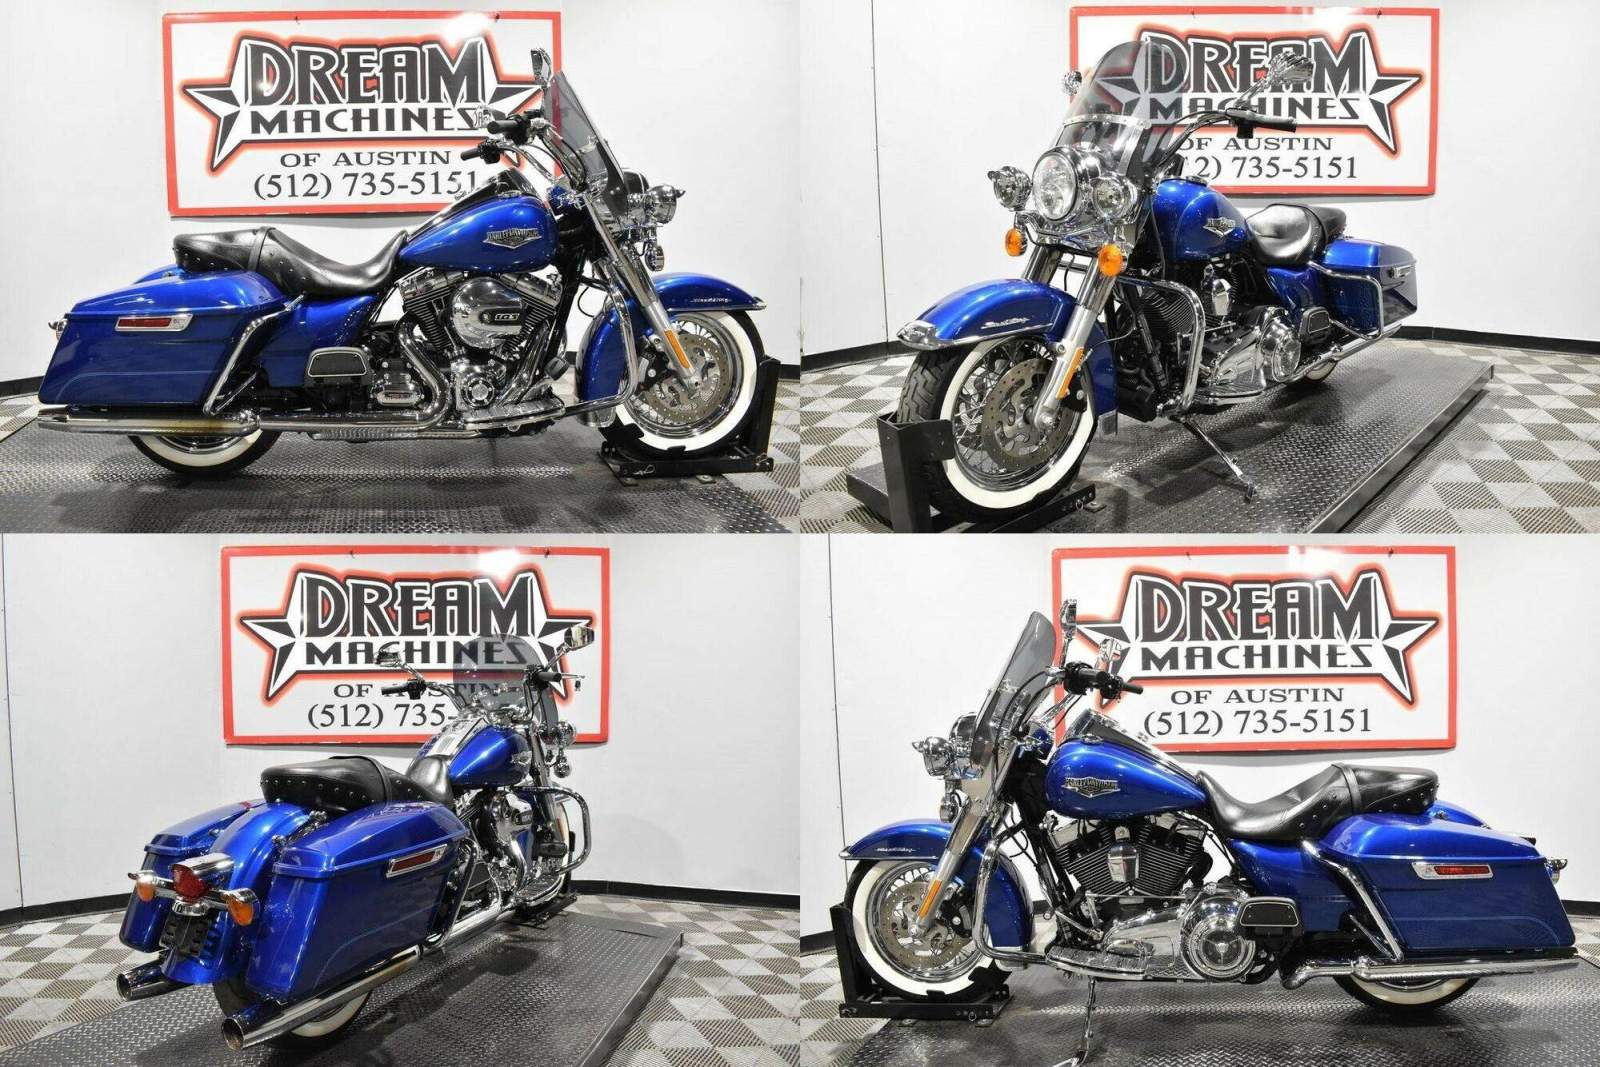 2015 Harley-Davidson FLHR - Road King Blue used for sale near me